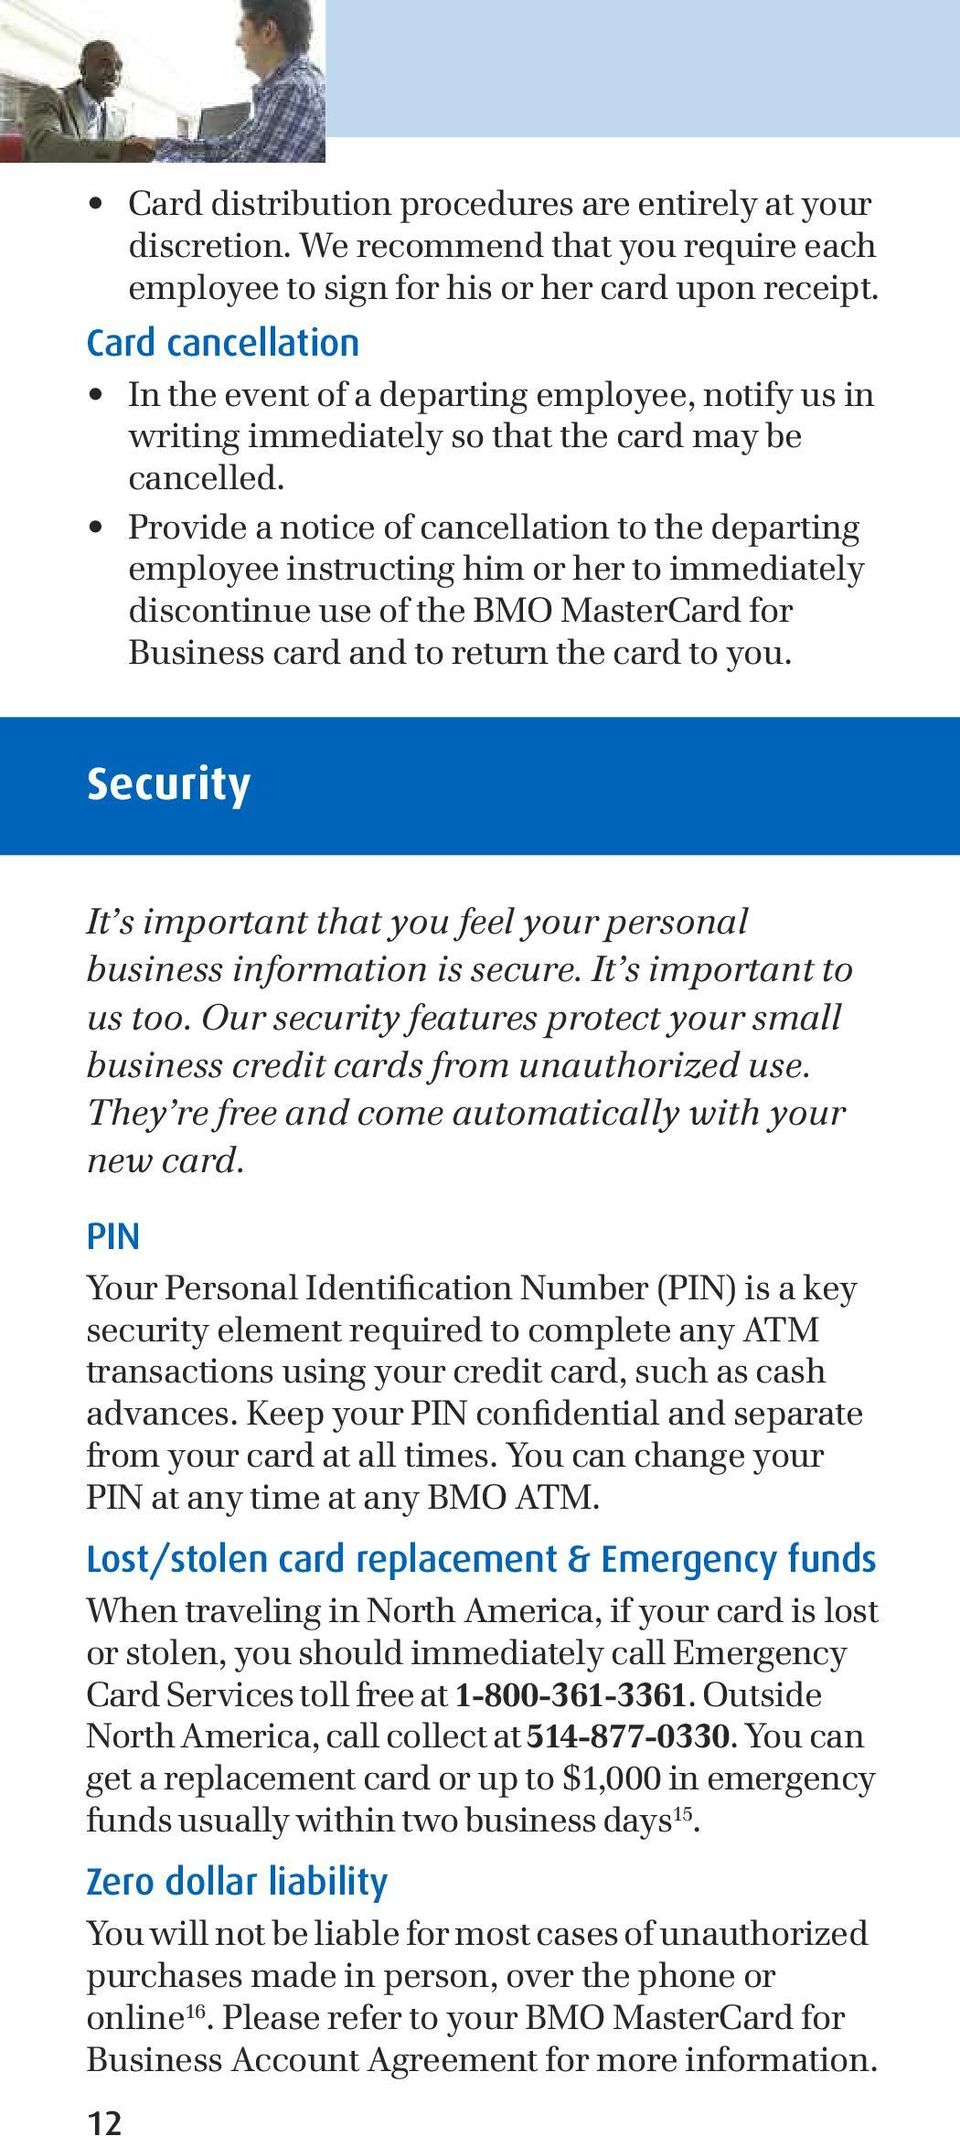 Provide a notice of cancellation to the departing employee instructing him or her to immediately discontinue use of the BMO MasterCard for Business card and to return the card to you.